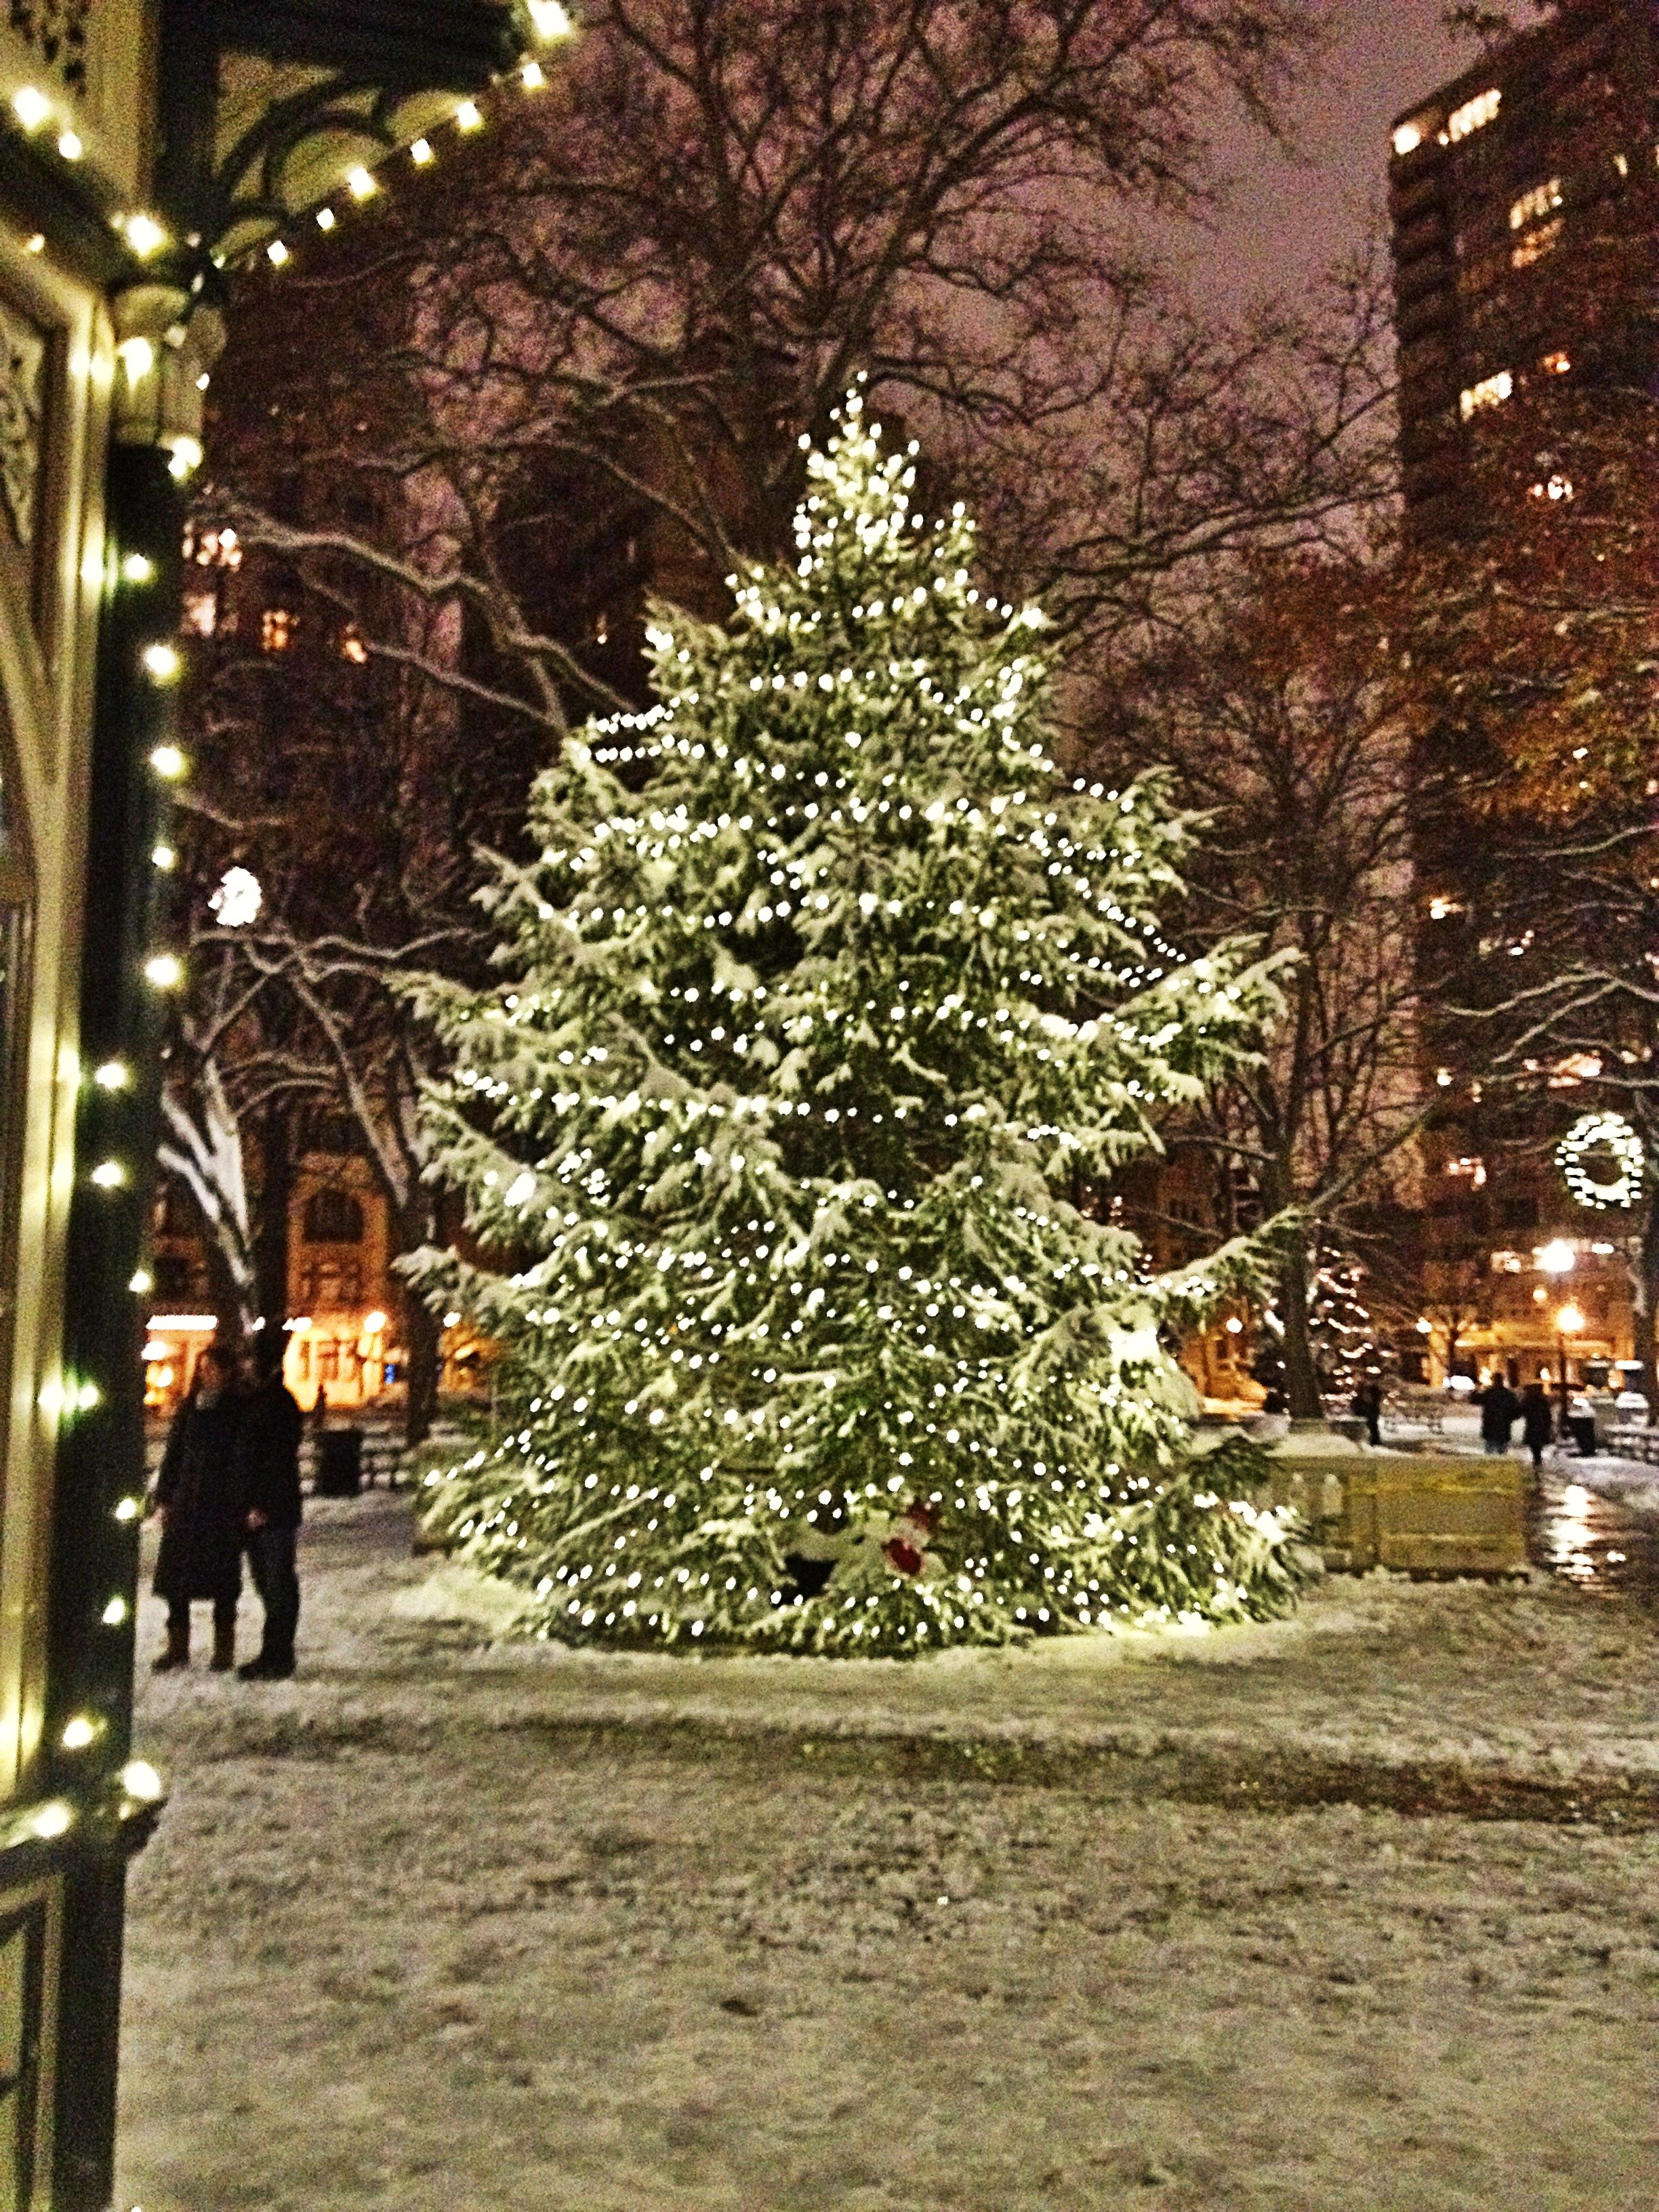 The Christmas Tree at Rittenhouse Square